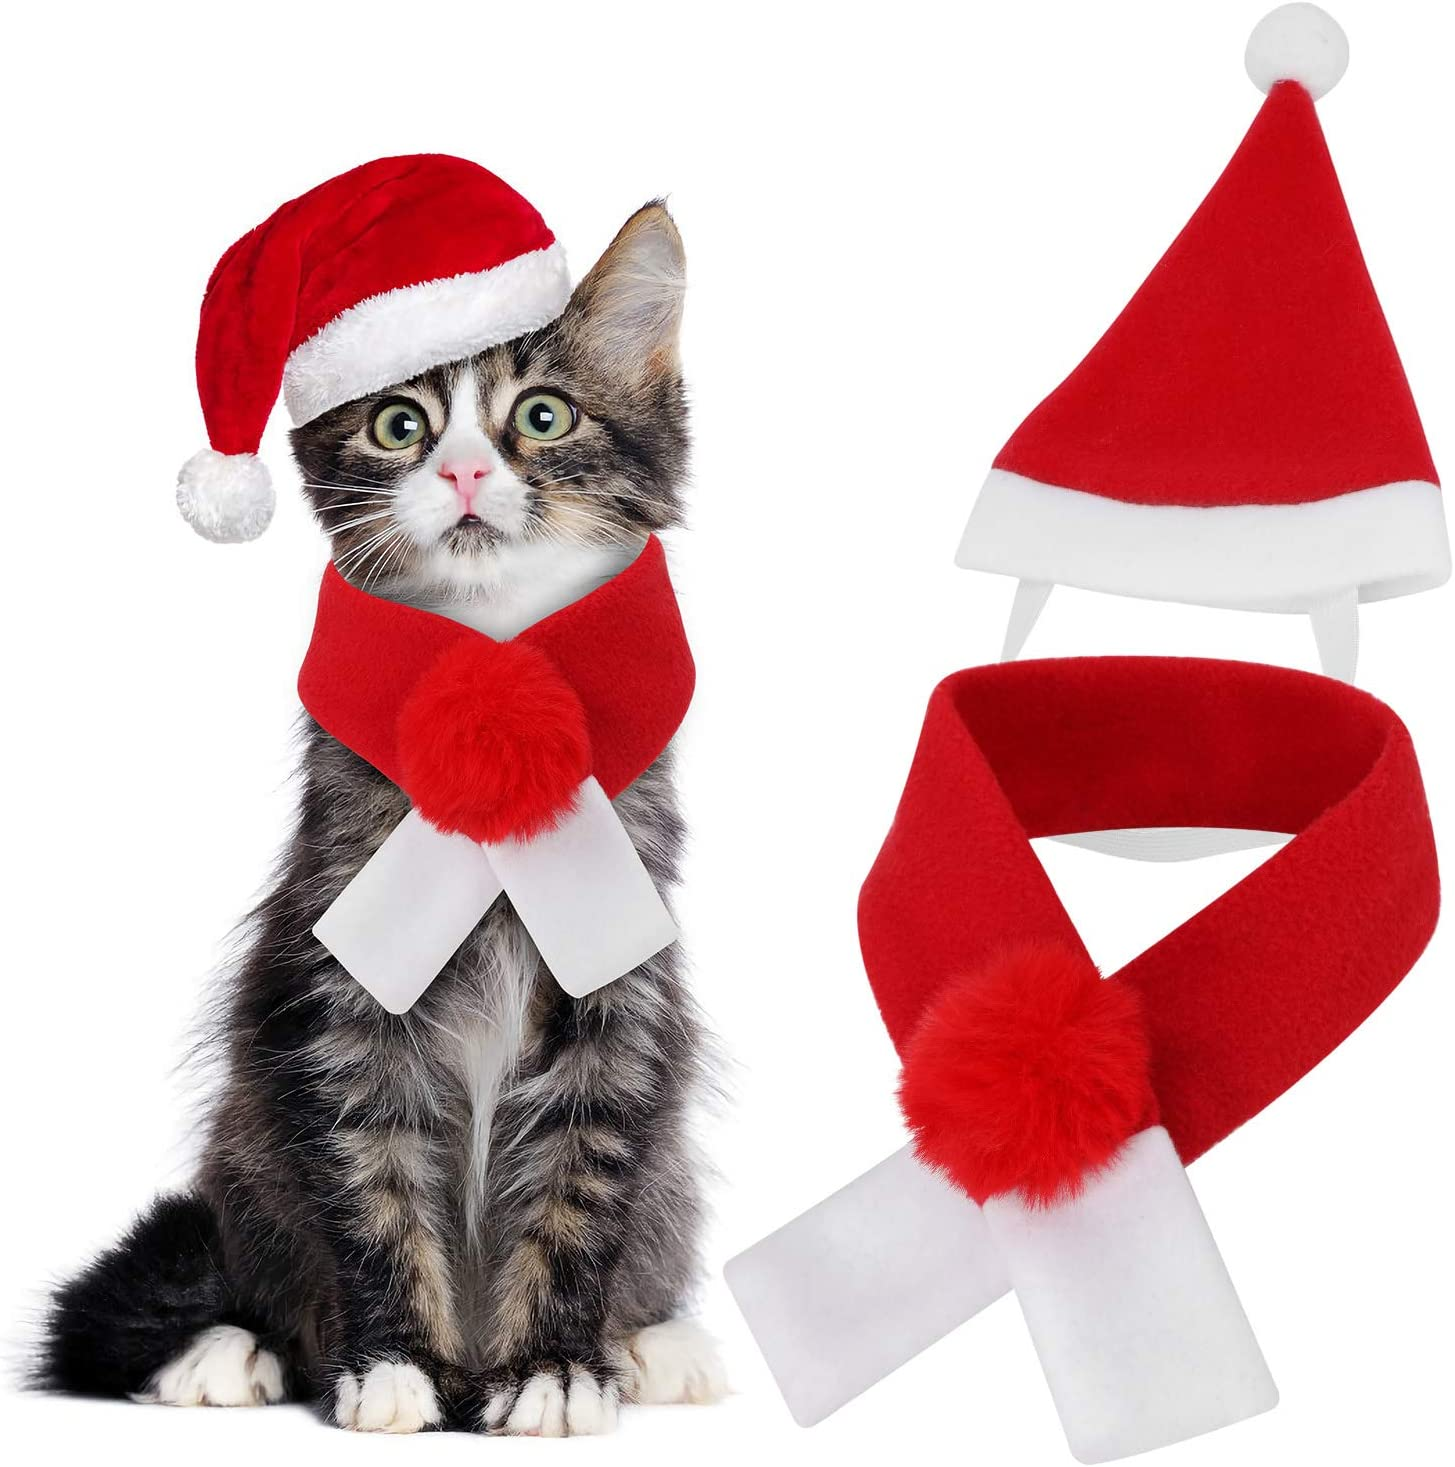 Qkurt Pet Xmas Costumes Apparel Christmas Santa Hat Scarf for Cats//Dogs Cosplay Dress up Pets Christmas Thanksgiving Day New Year Party Fancy Dress Fashion Warmth